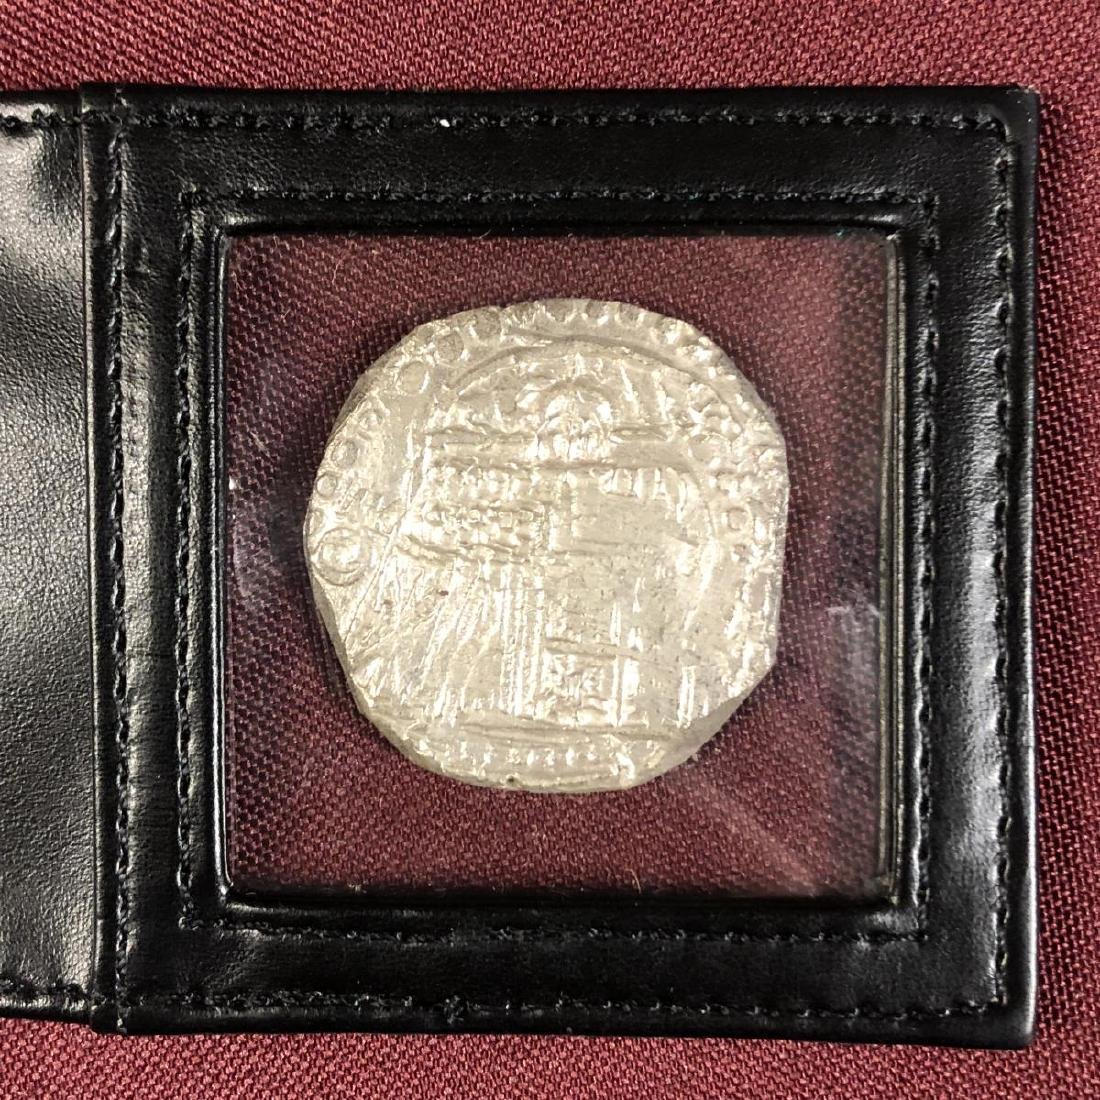 Atocha Shipwreck Coin 8 Reales Mel Fisher with COA - 4